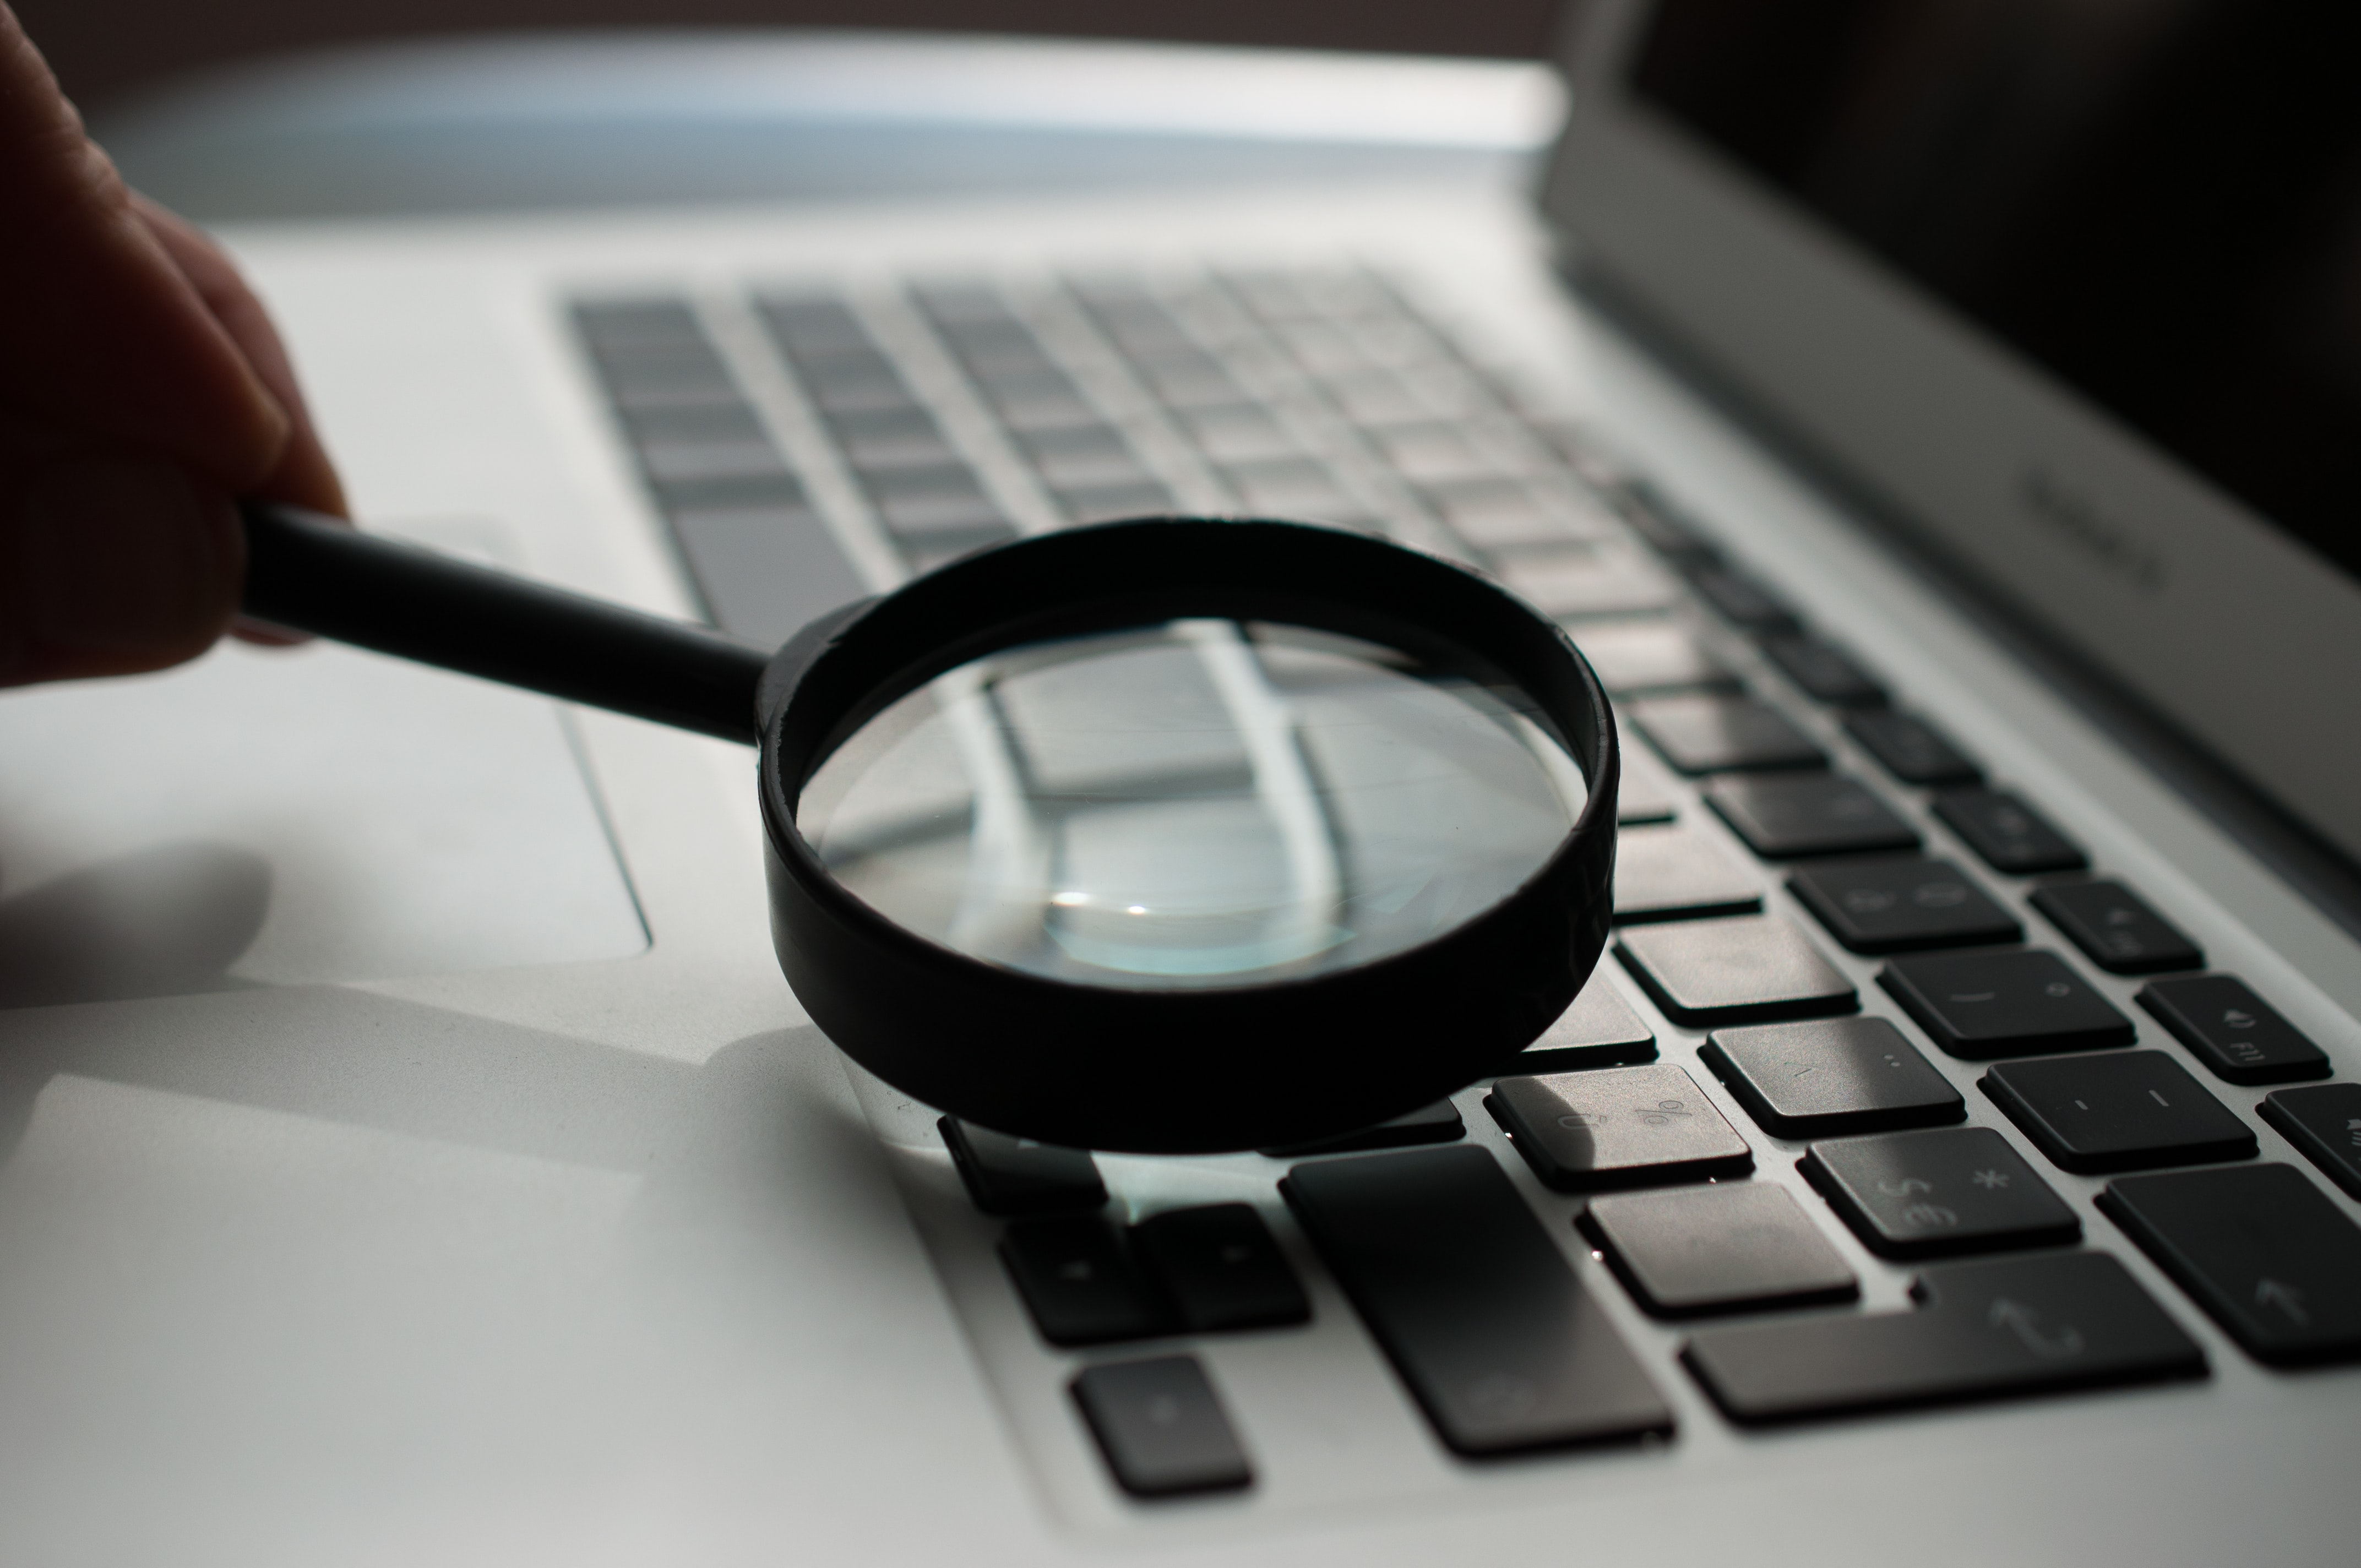 Magnifying glass resting on top of a laptop keyboard